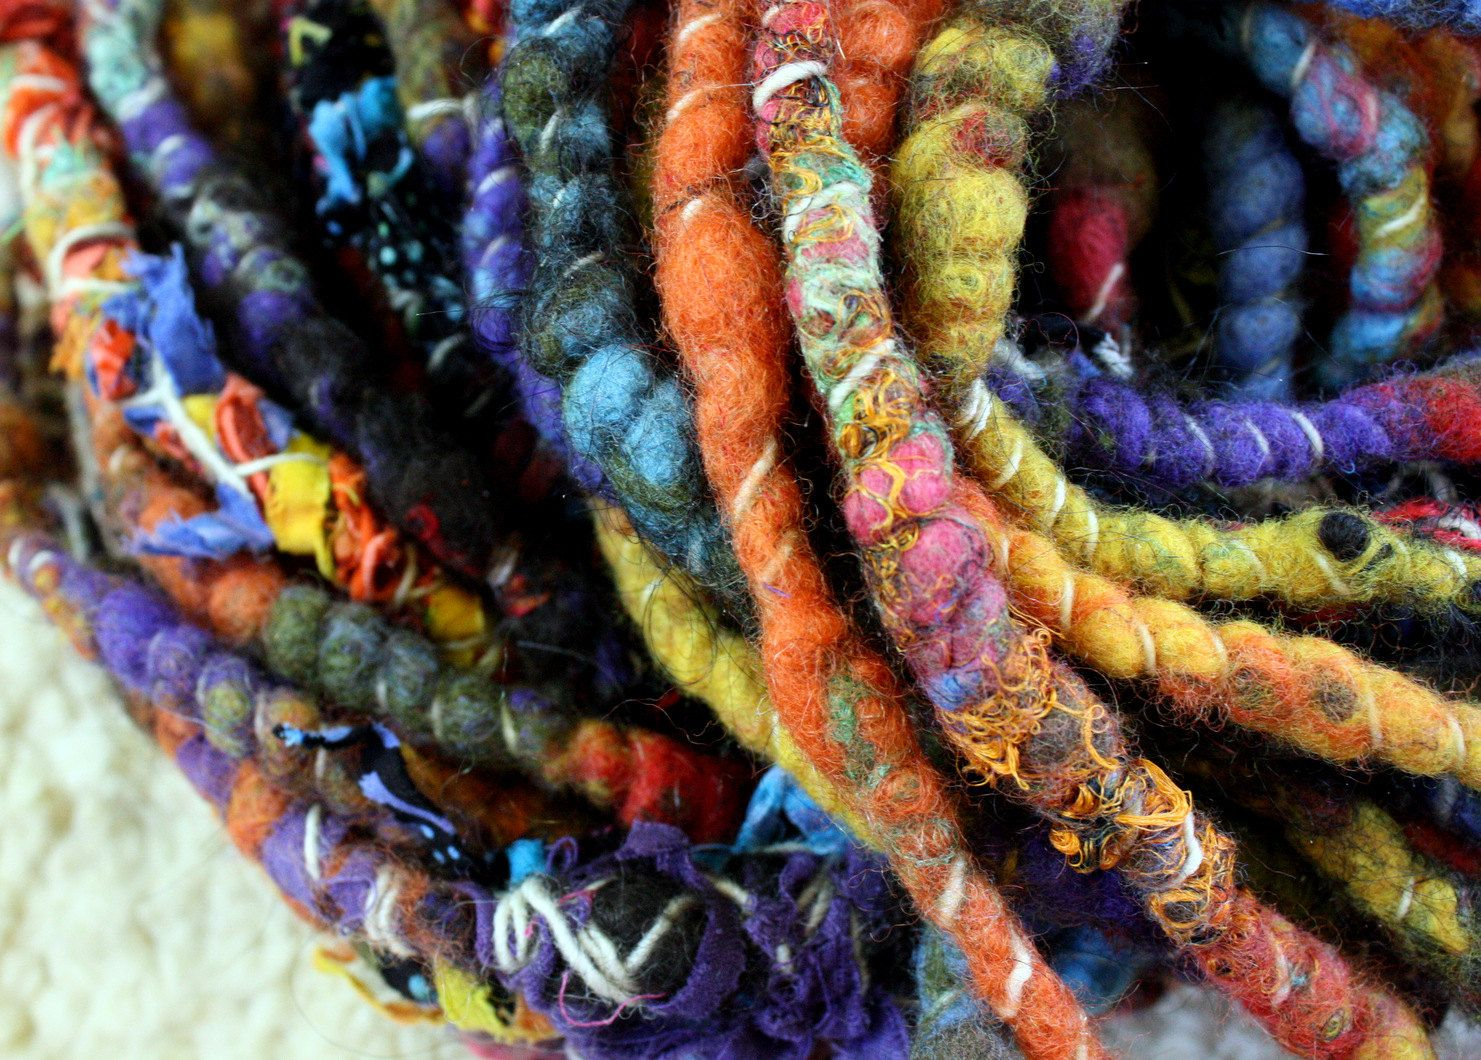 Mondo Wrapped Raggedylocks - Faerie Spun Dreads - United Colors - Handmade Felted Wool Double Ended Dread Falls. $102.00, via Etsy.